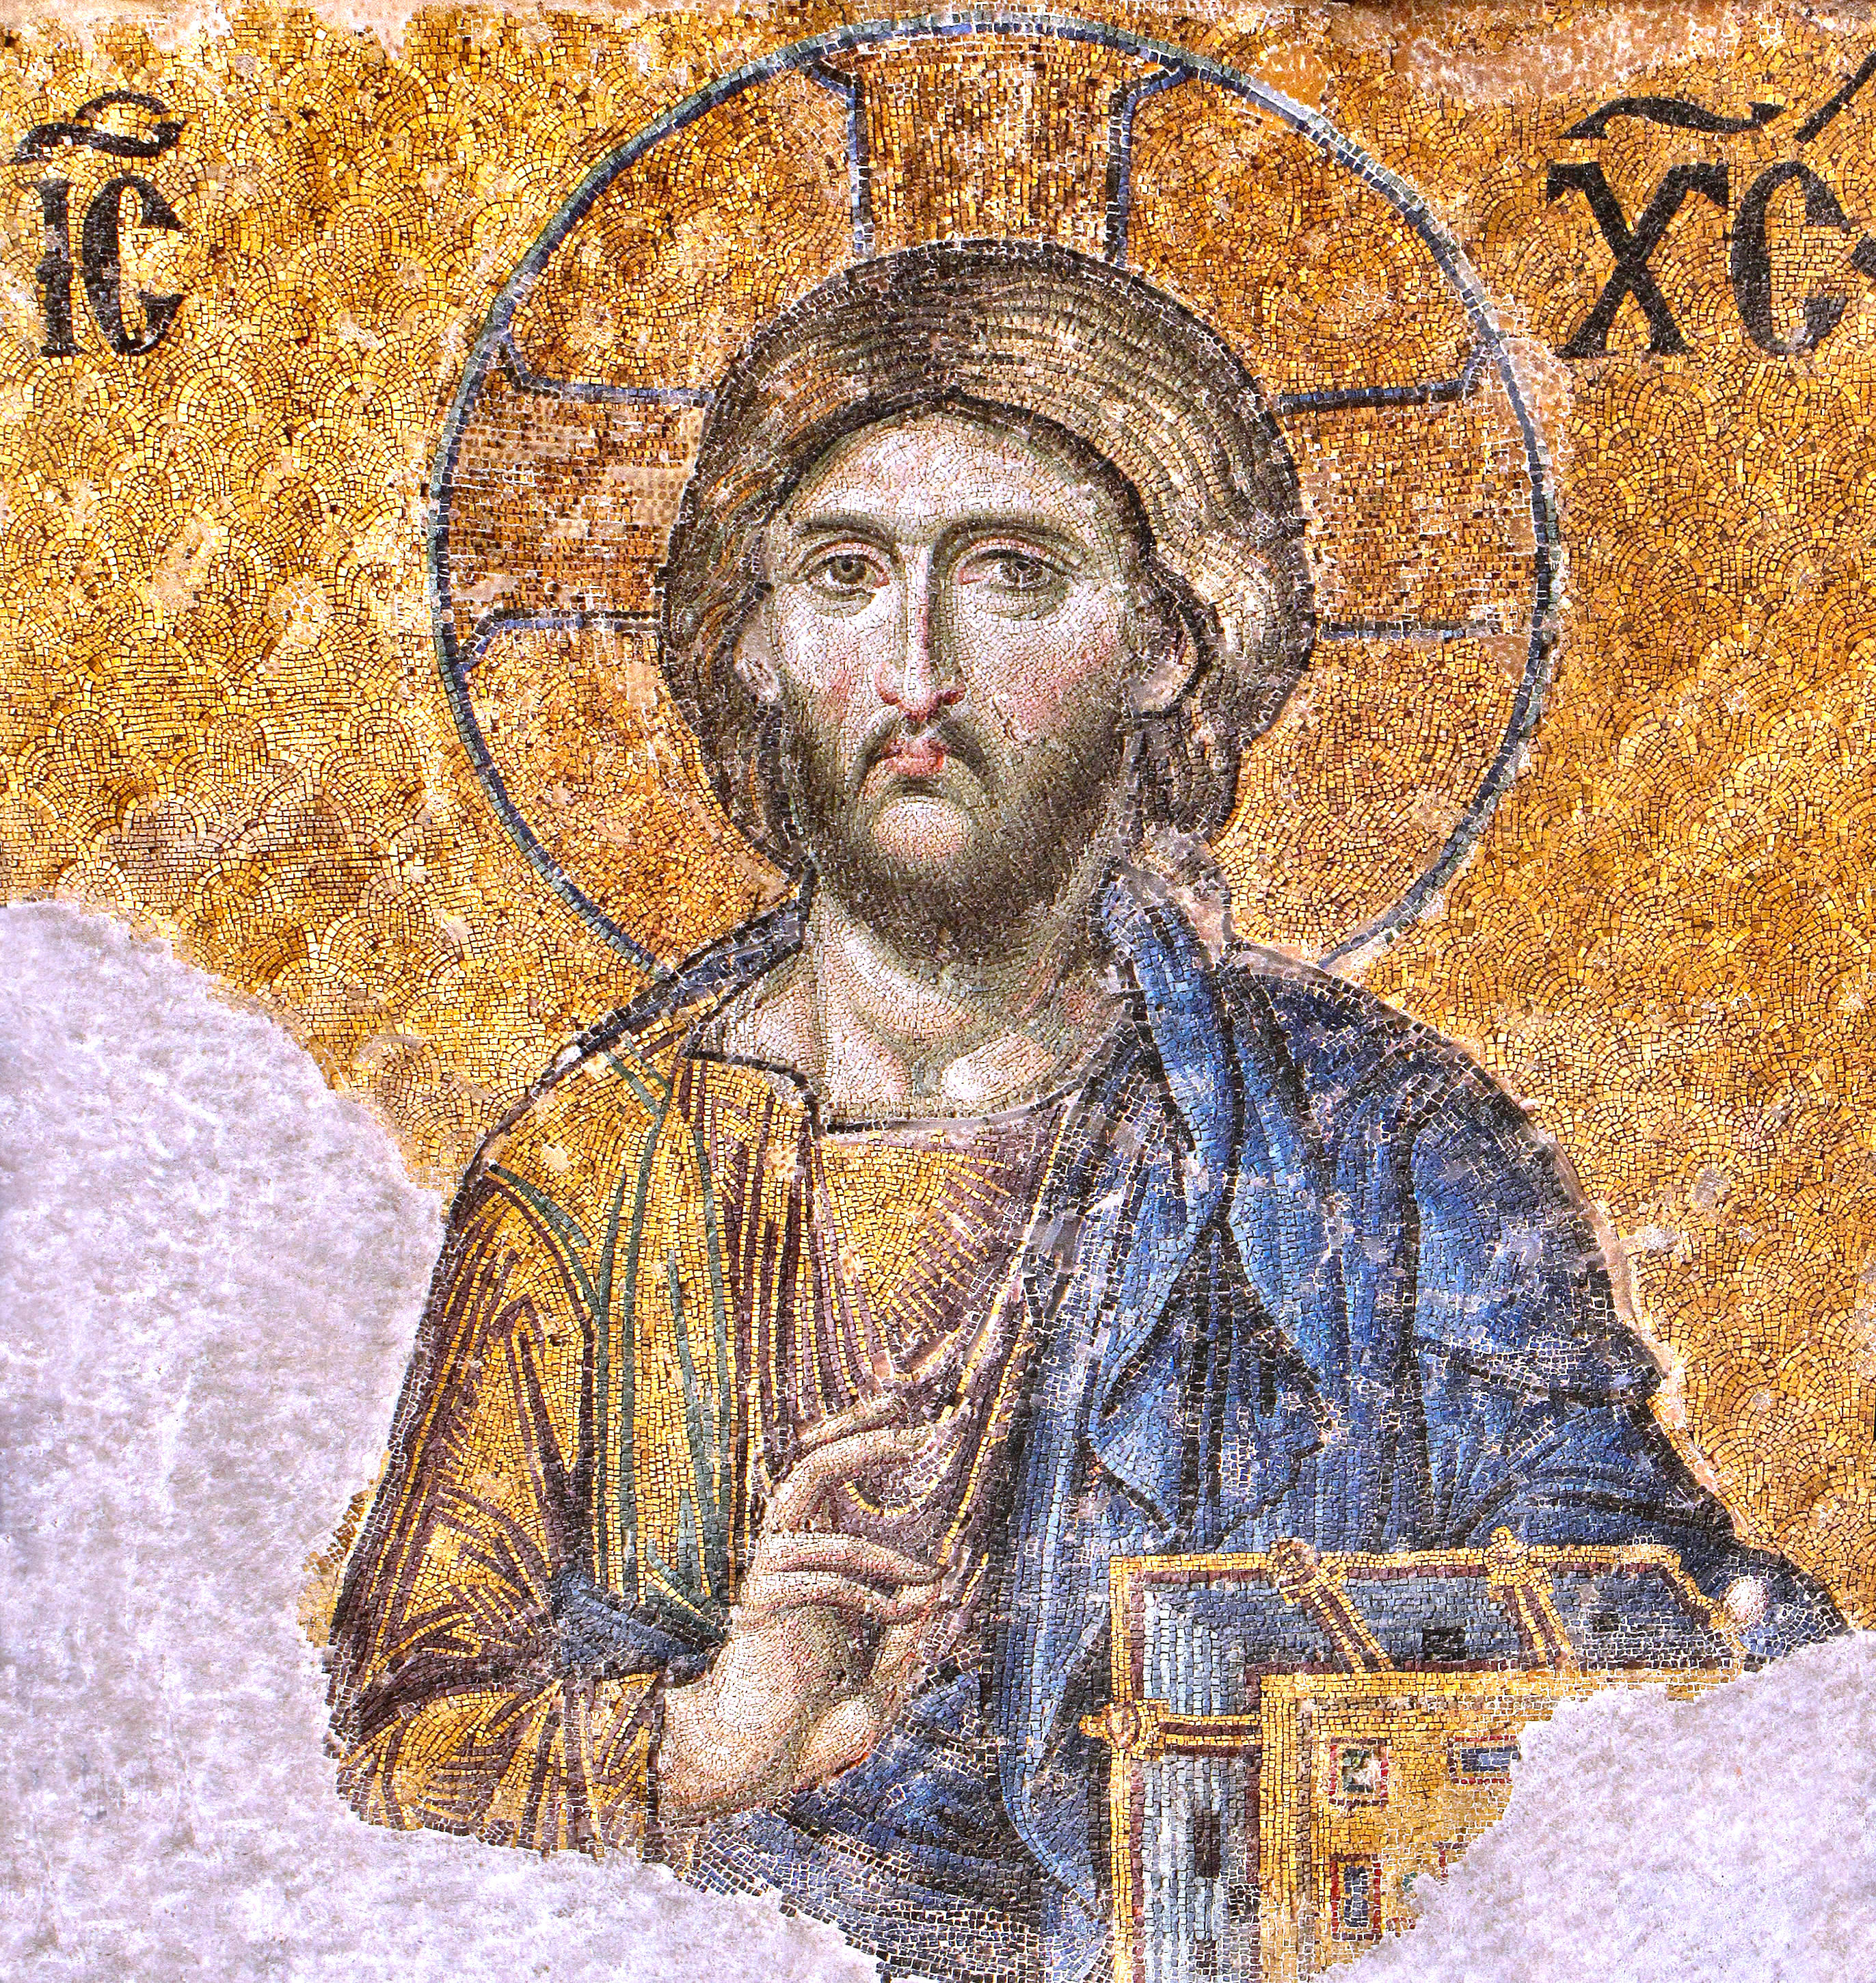 Christ, Pantocrator, Epiphany Proclamation of Easter